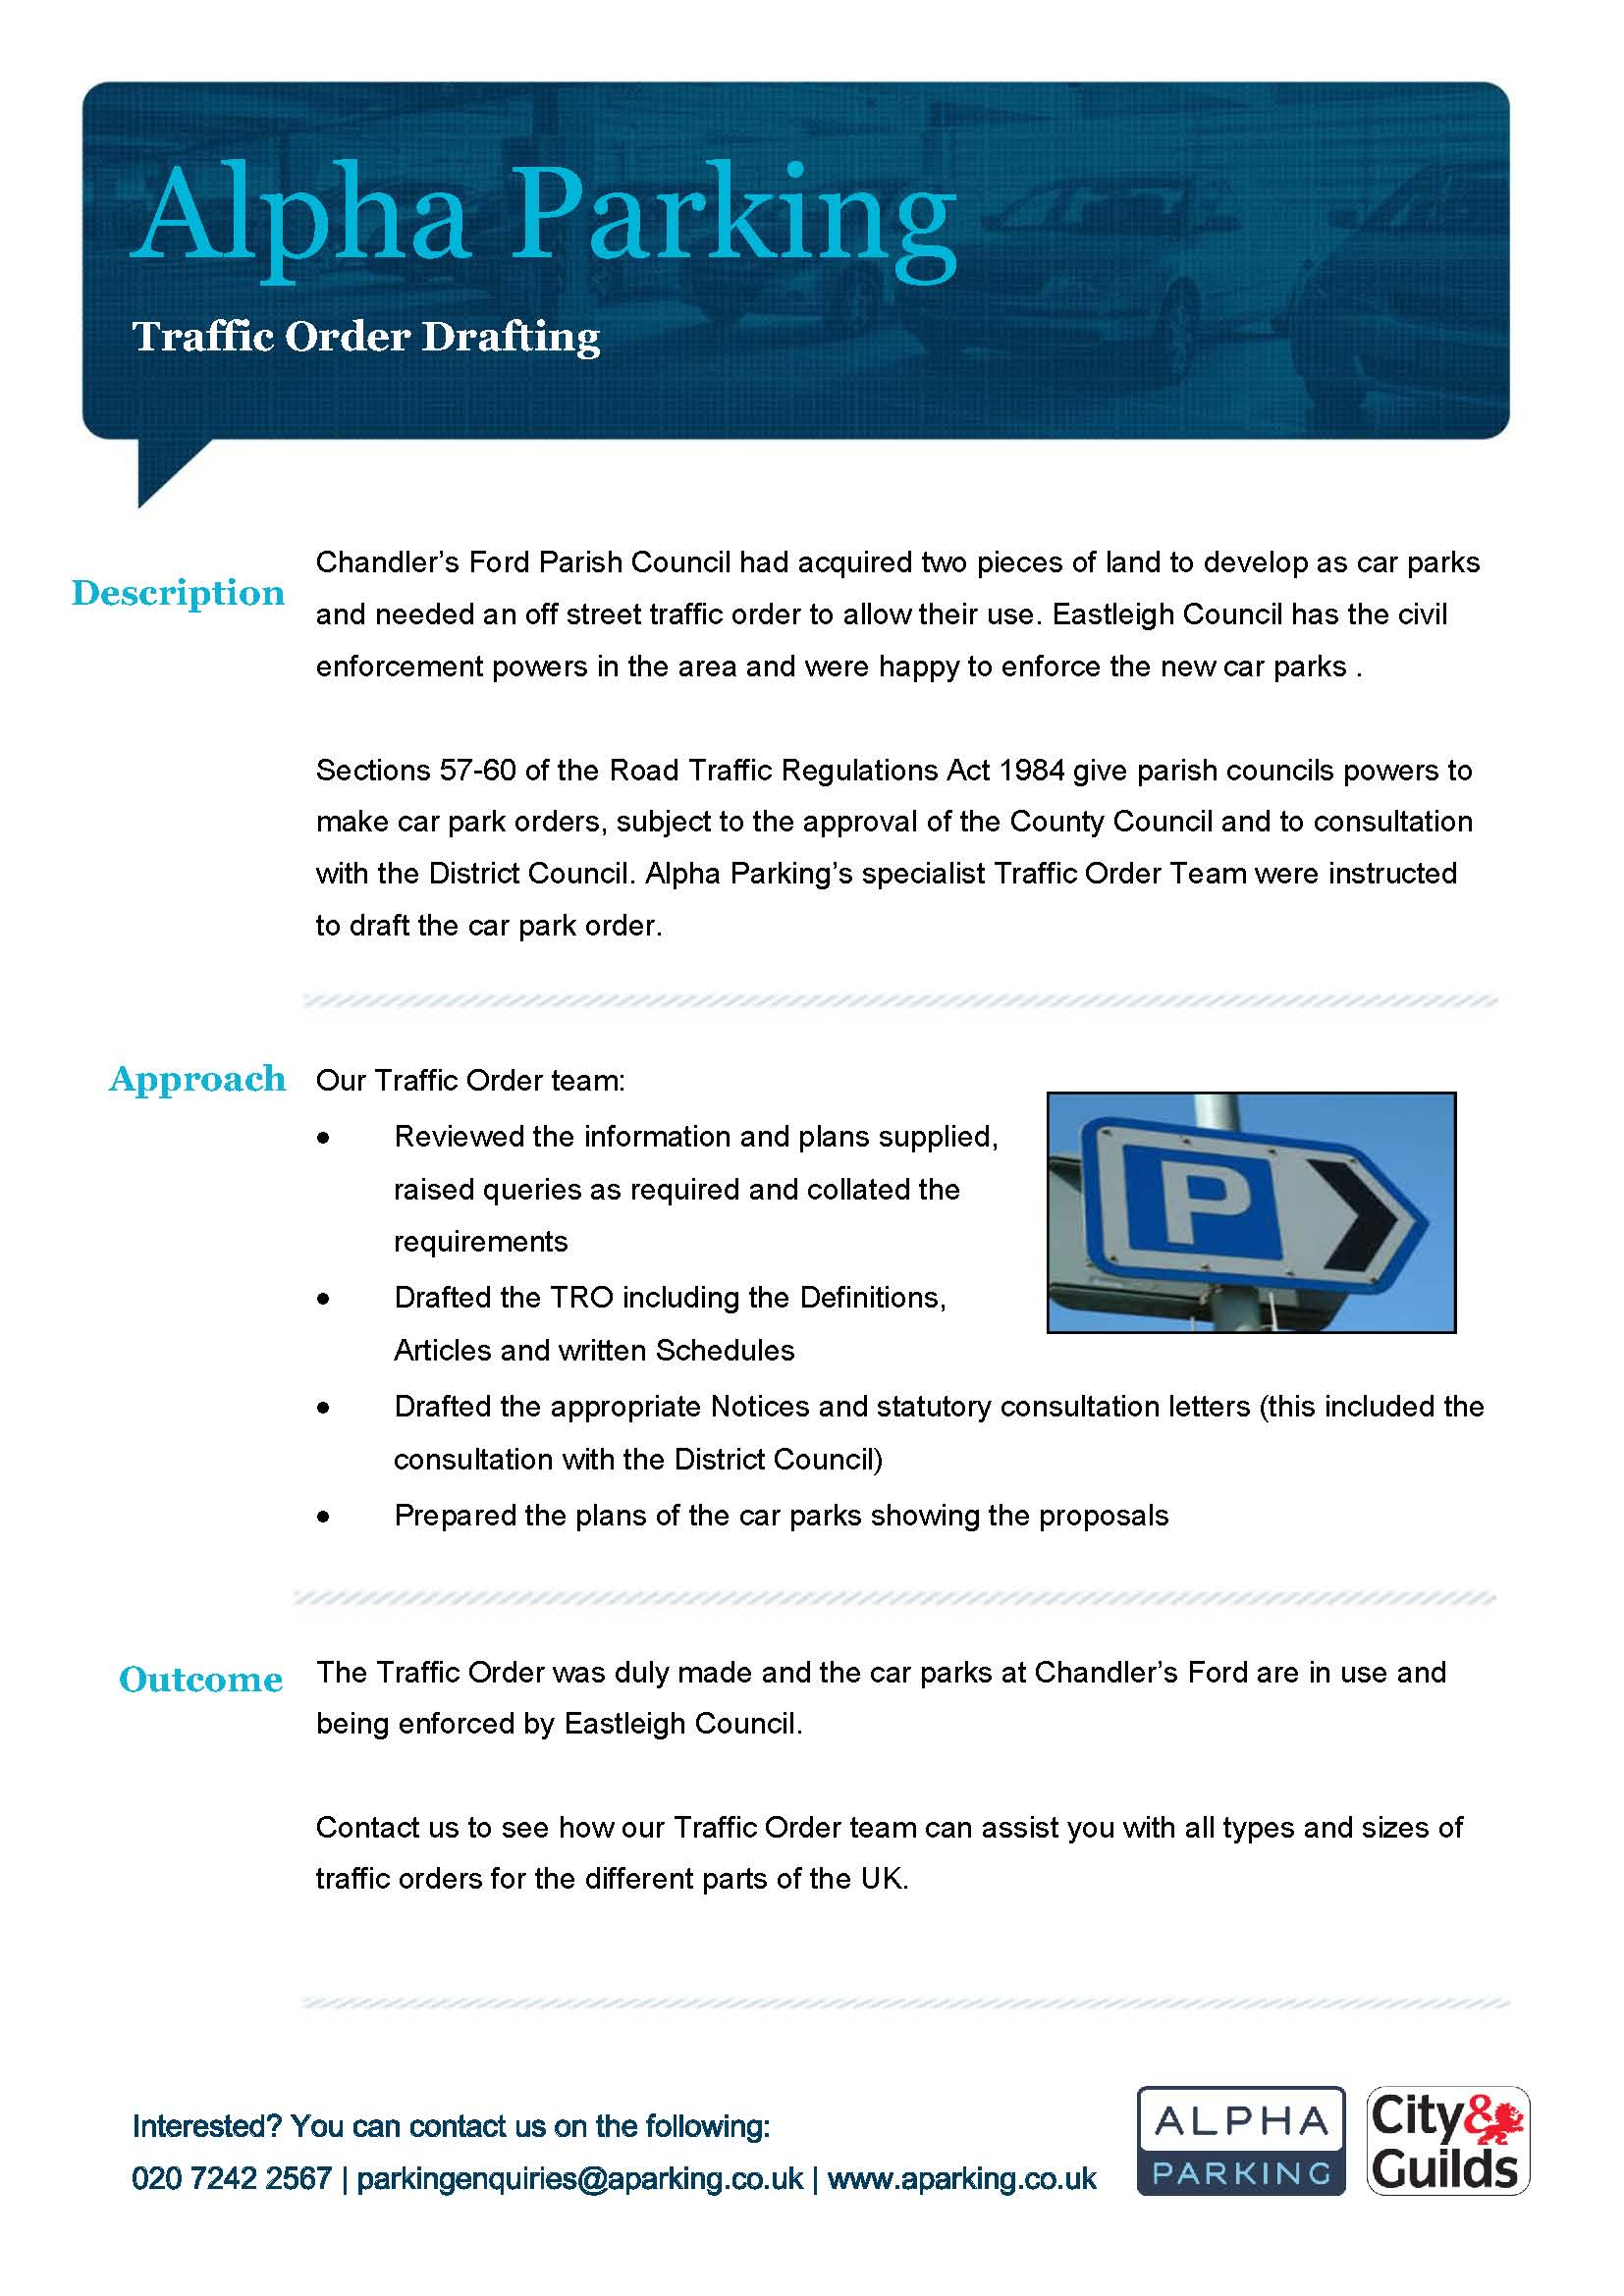 Traffic Order Drafting Case Study Chandlers Ford